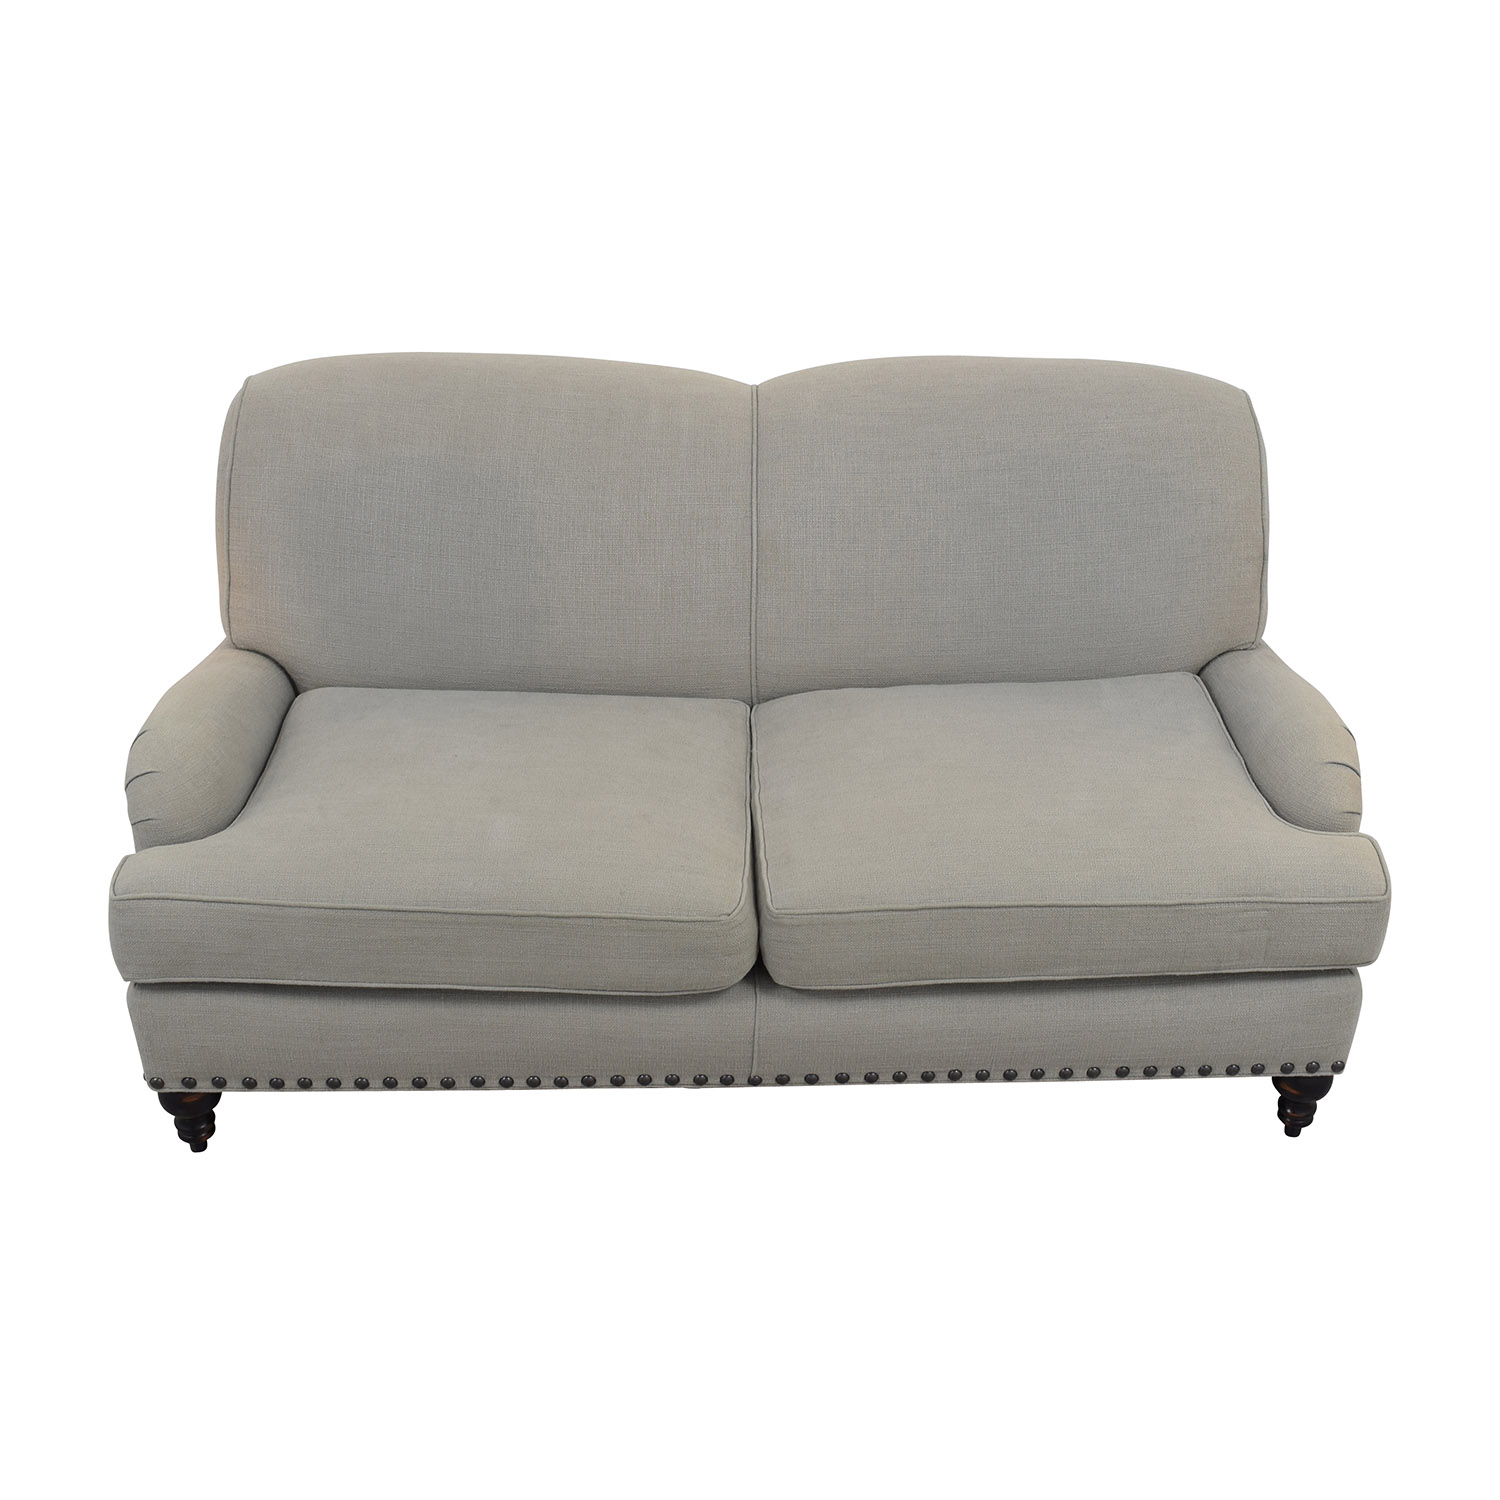 Arhaus Furniture Perry Thelma Sterling Sofa / Classic Sofas